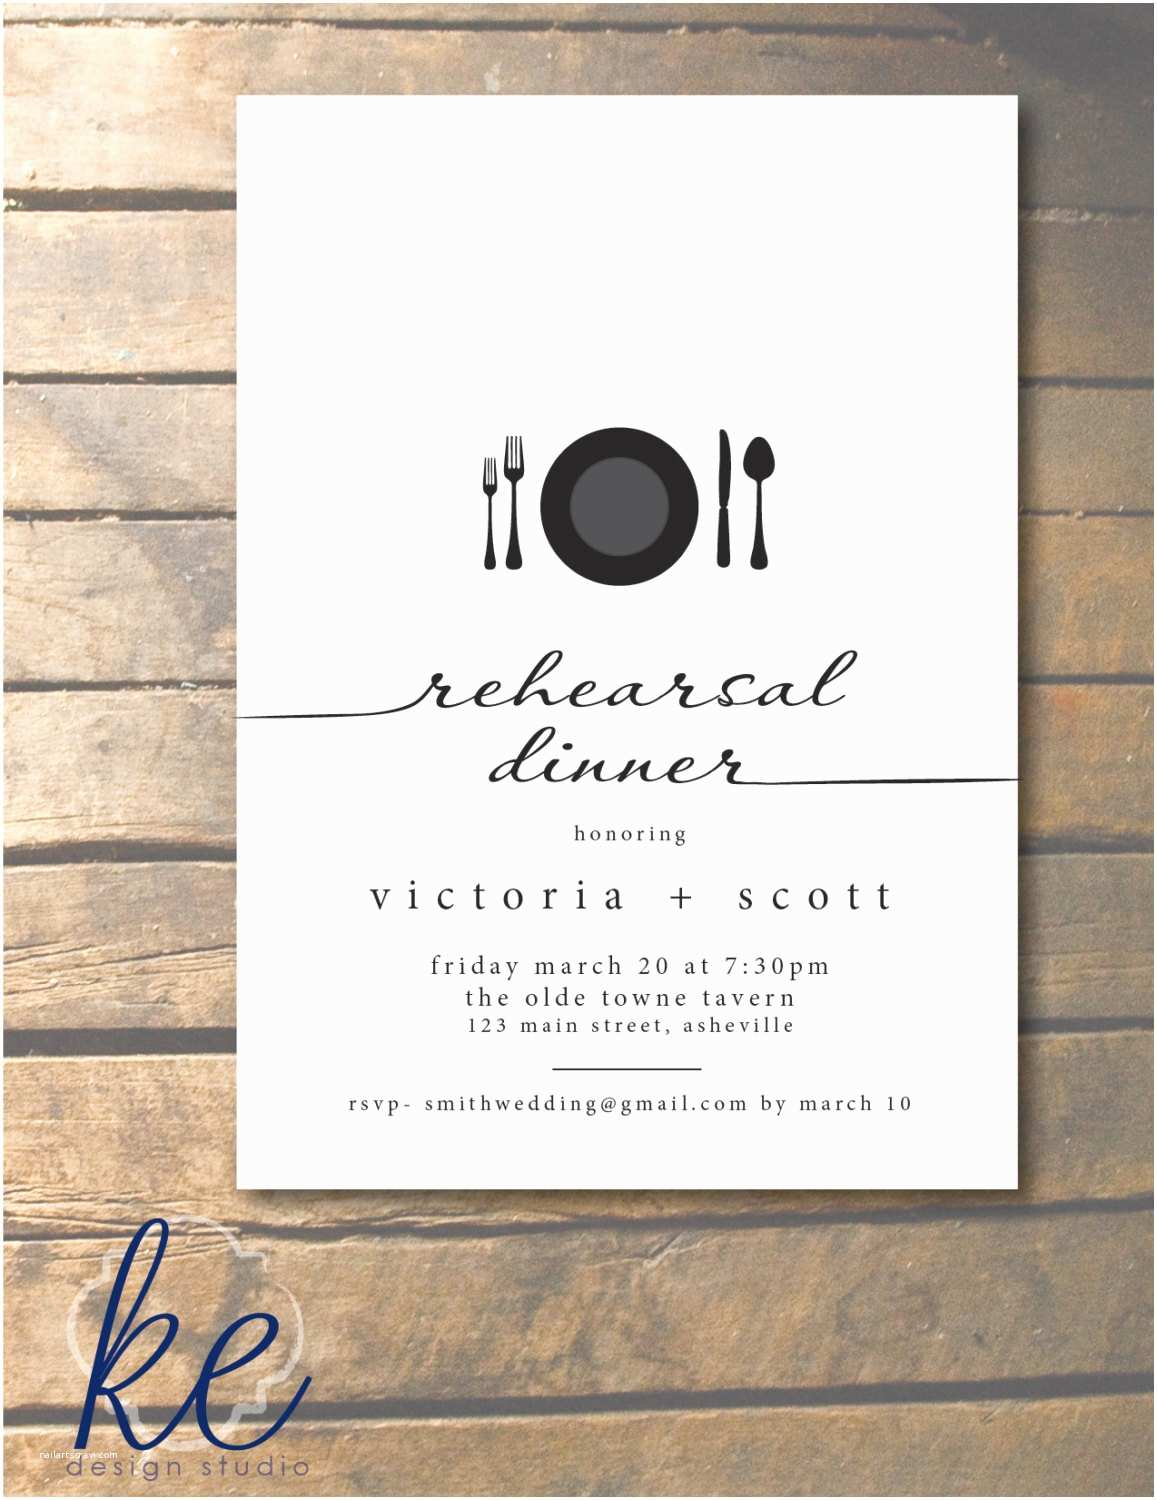 Invitations for Rehearsal Dinner Script Rehearsal Dinner Invitation with Place by